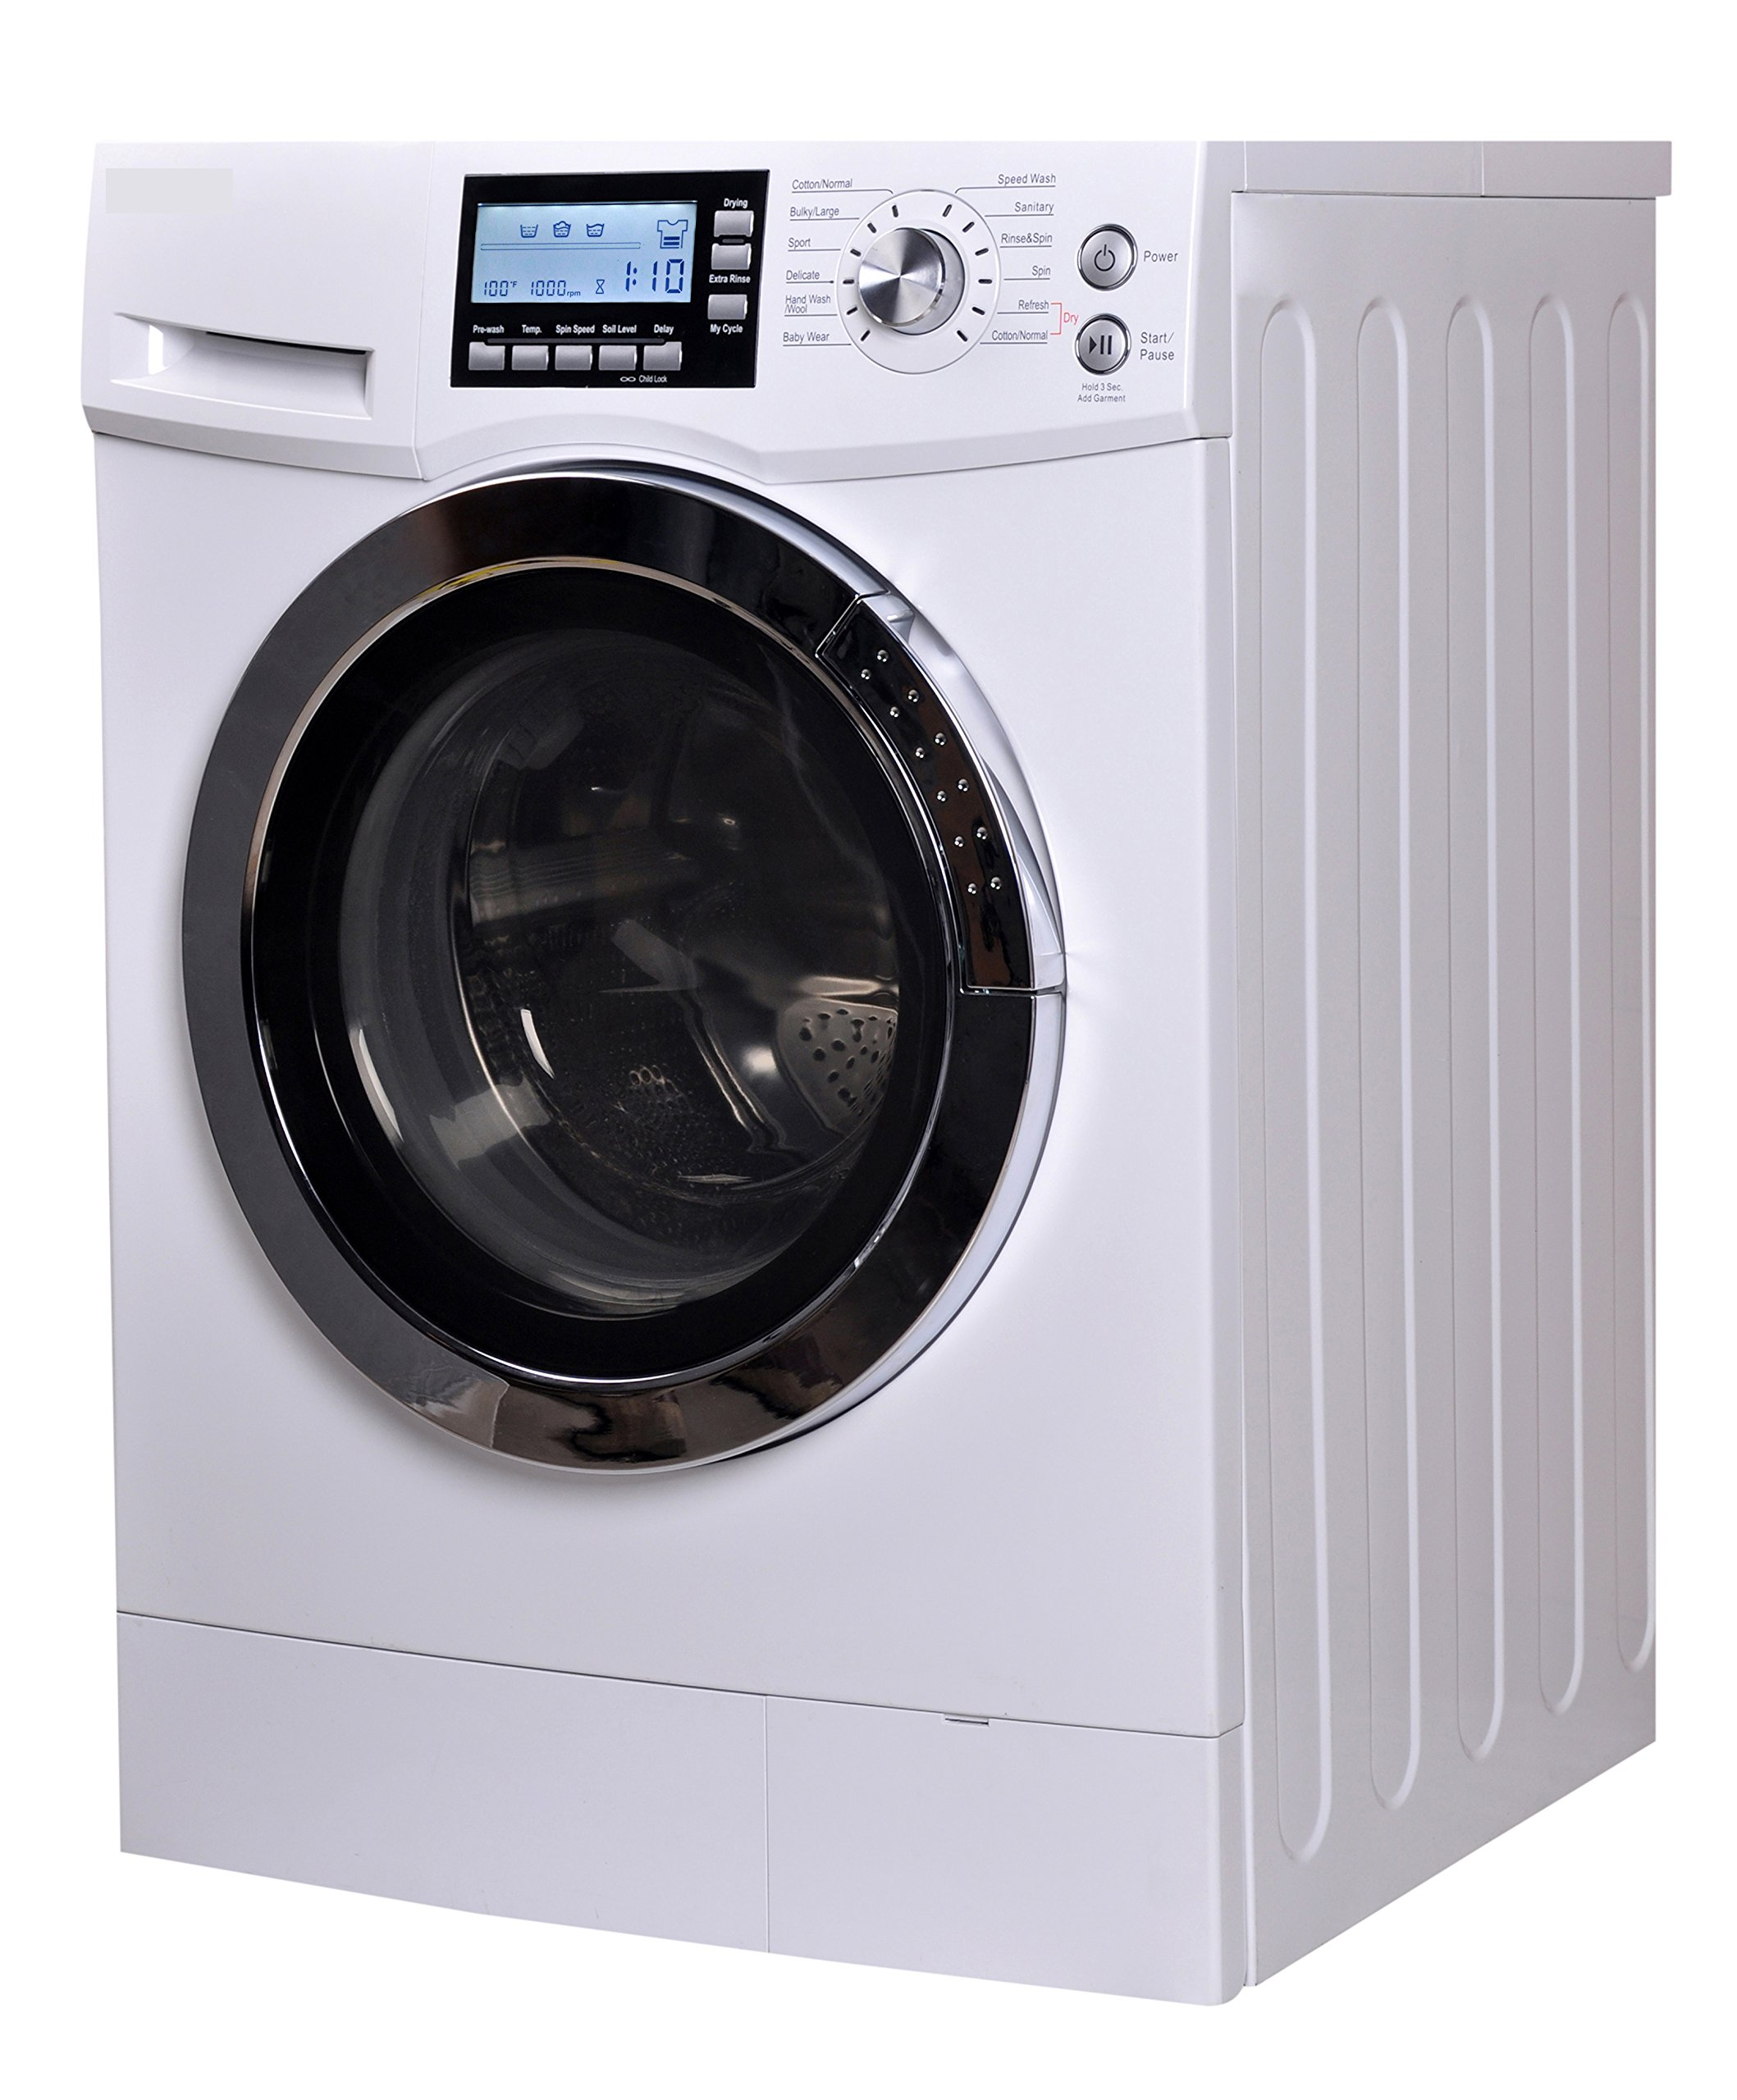 RCA RWD200 2.0 Cubic Feet Front Loading Washer